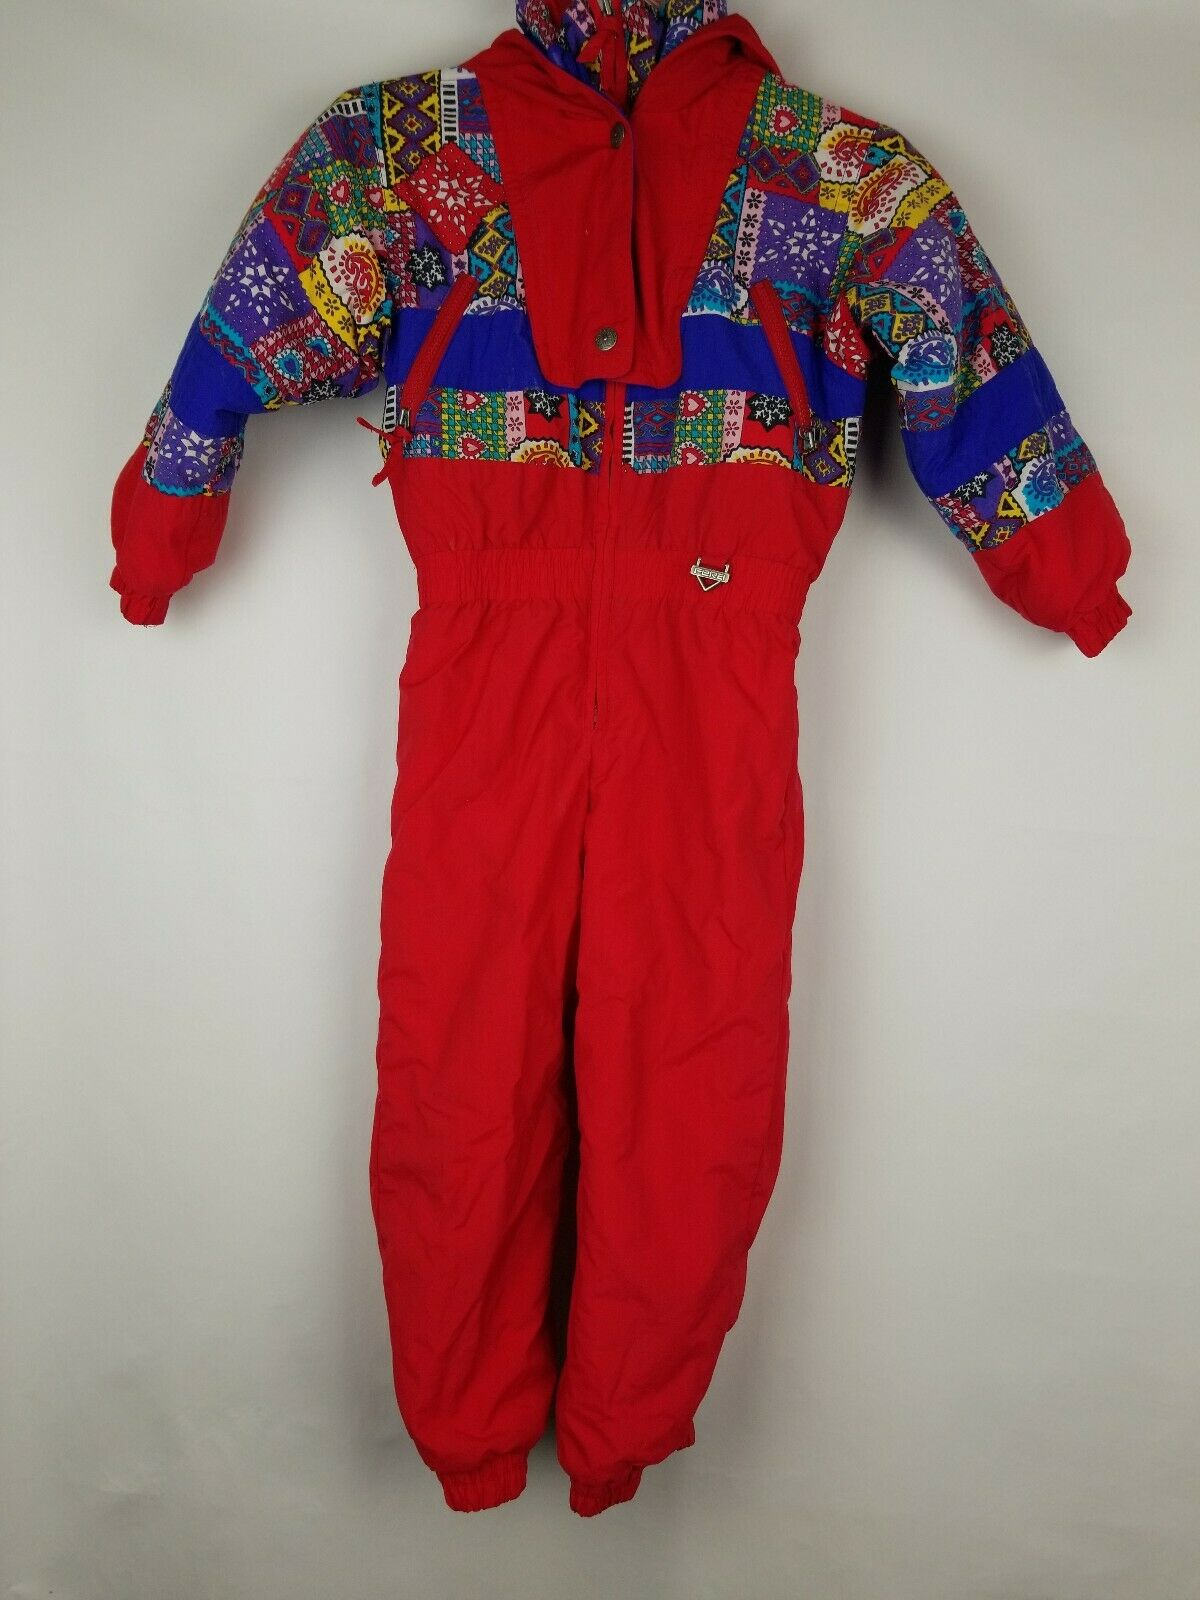 Vintage Fera Junior Size 6 Snowsuit   Ski suit Bib